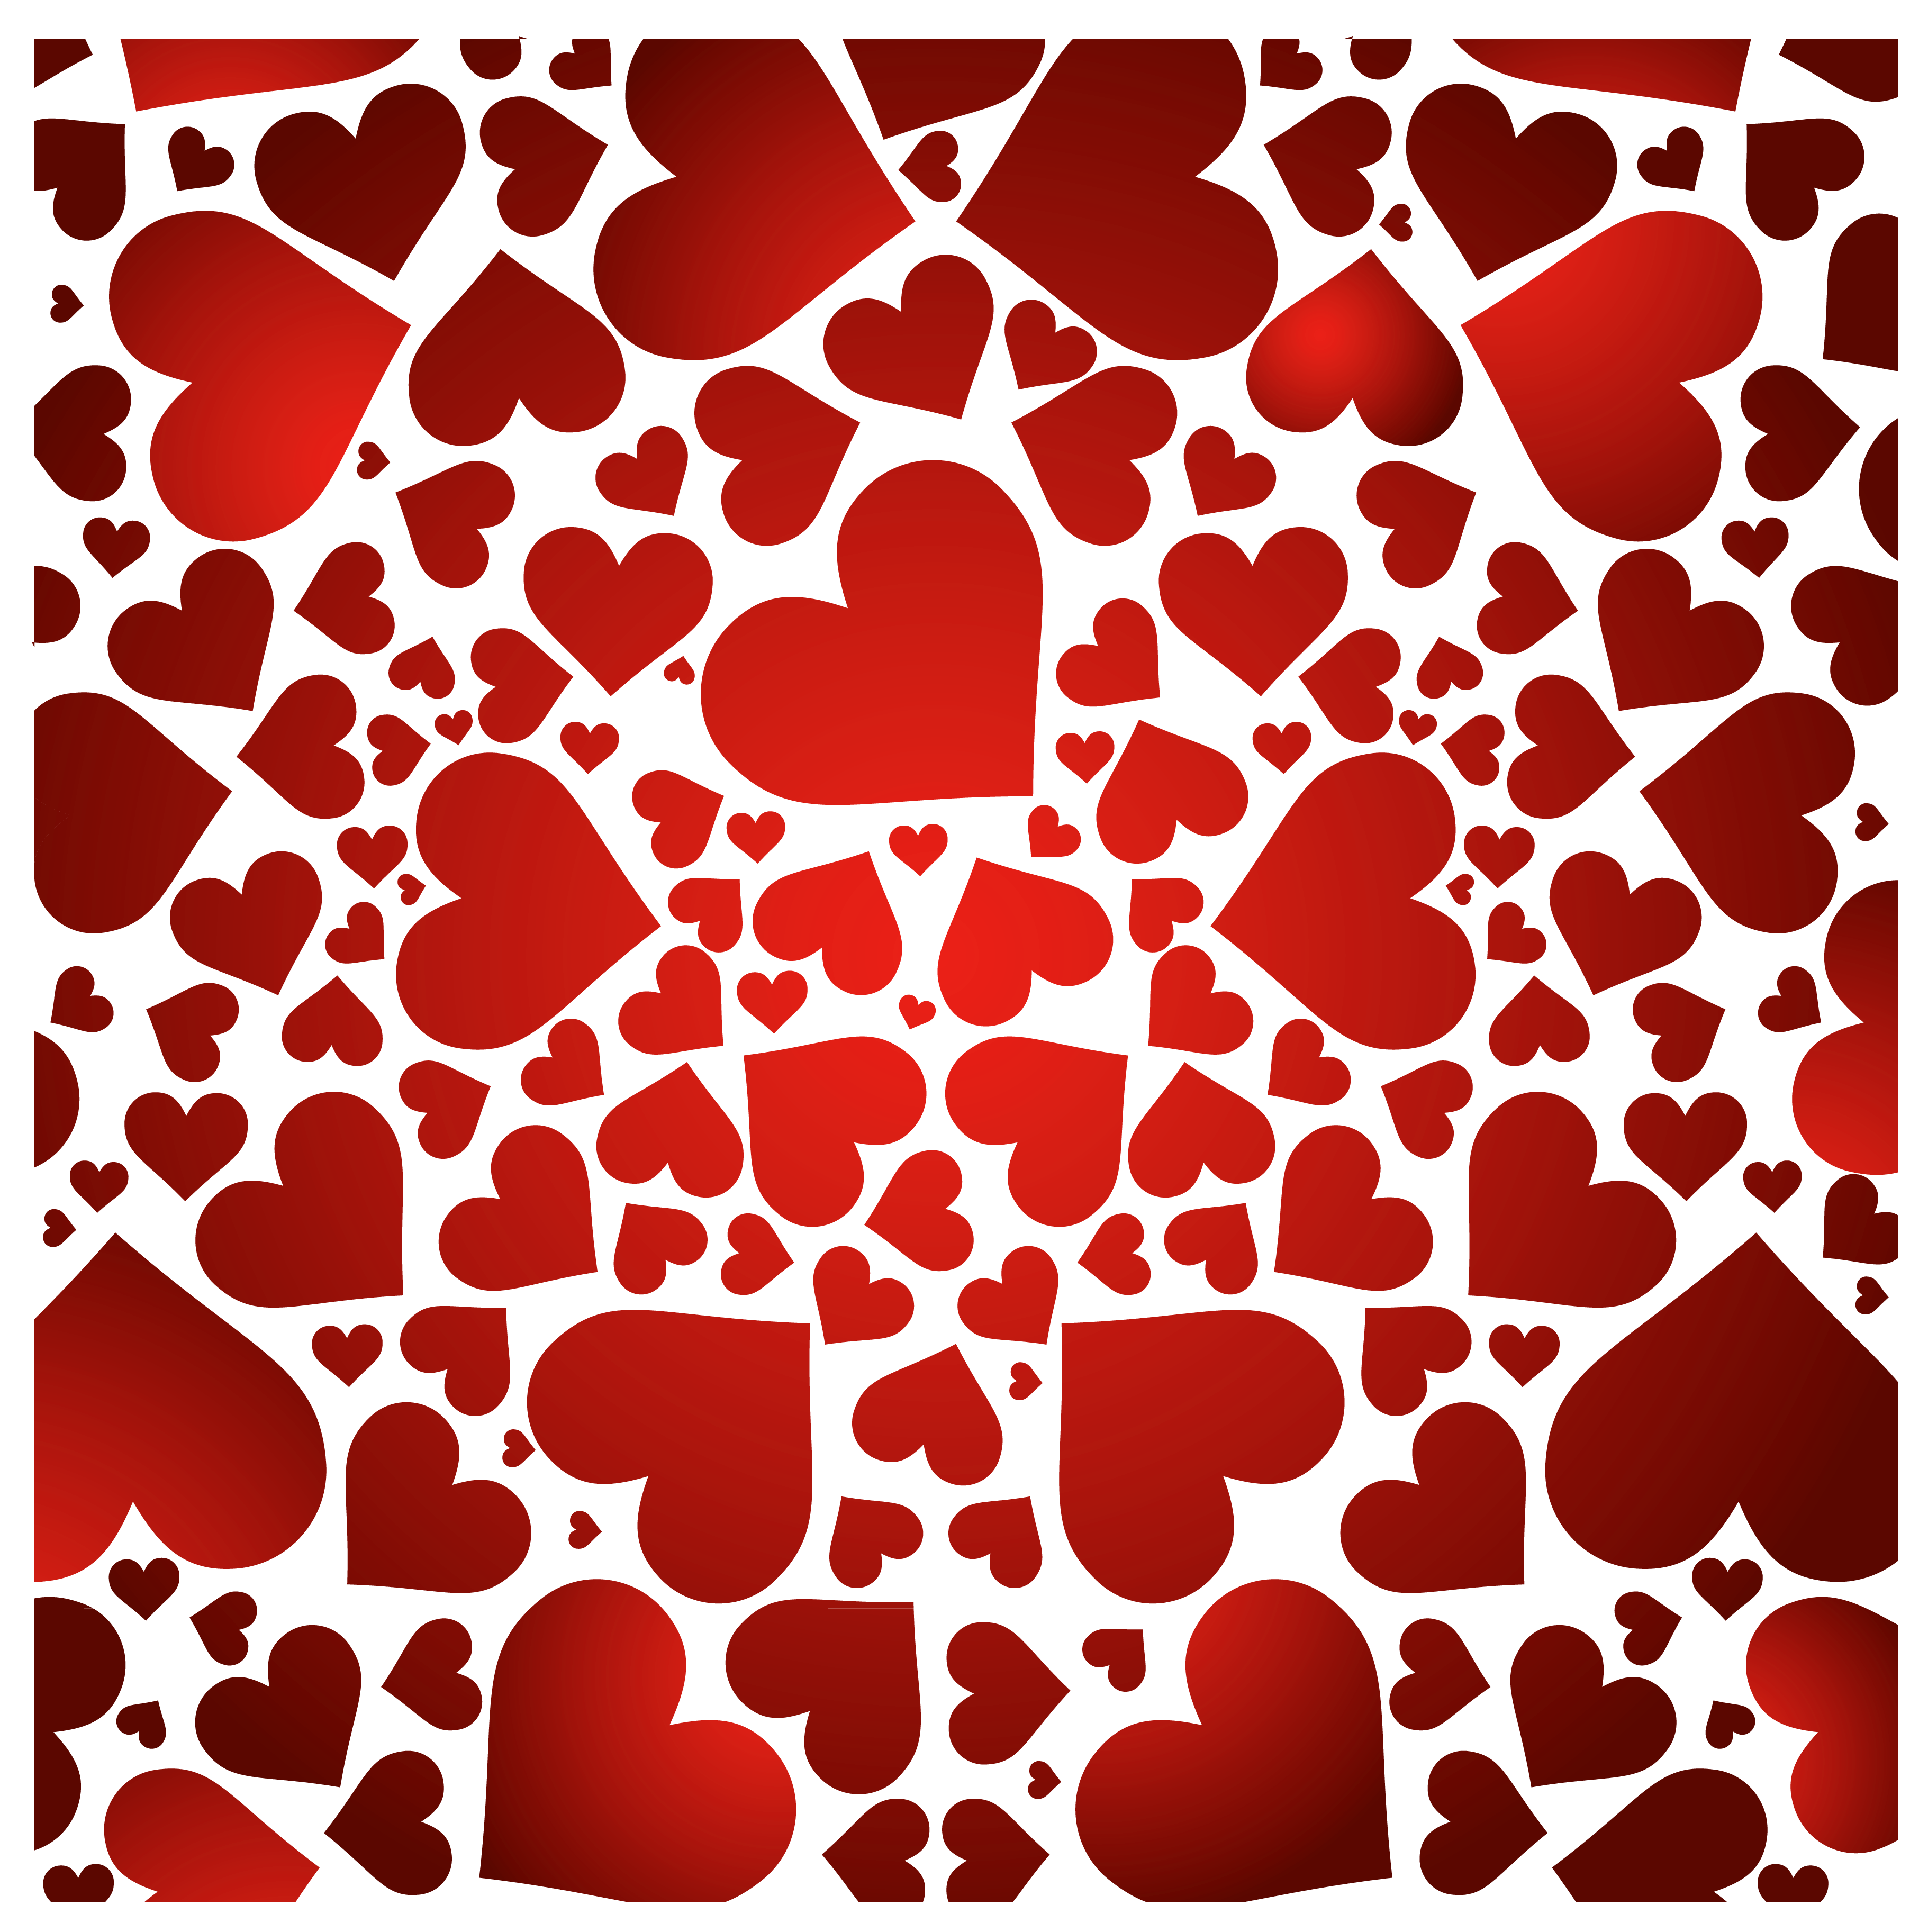 Heart pattern clipart banner Hearts Decor PNG Clipart | Gallery Yopriceville - High-Quality ... banner